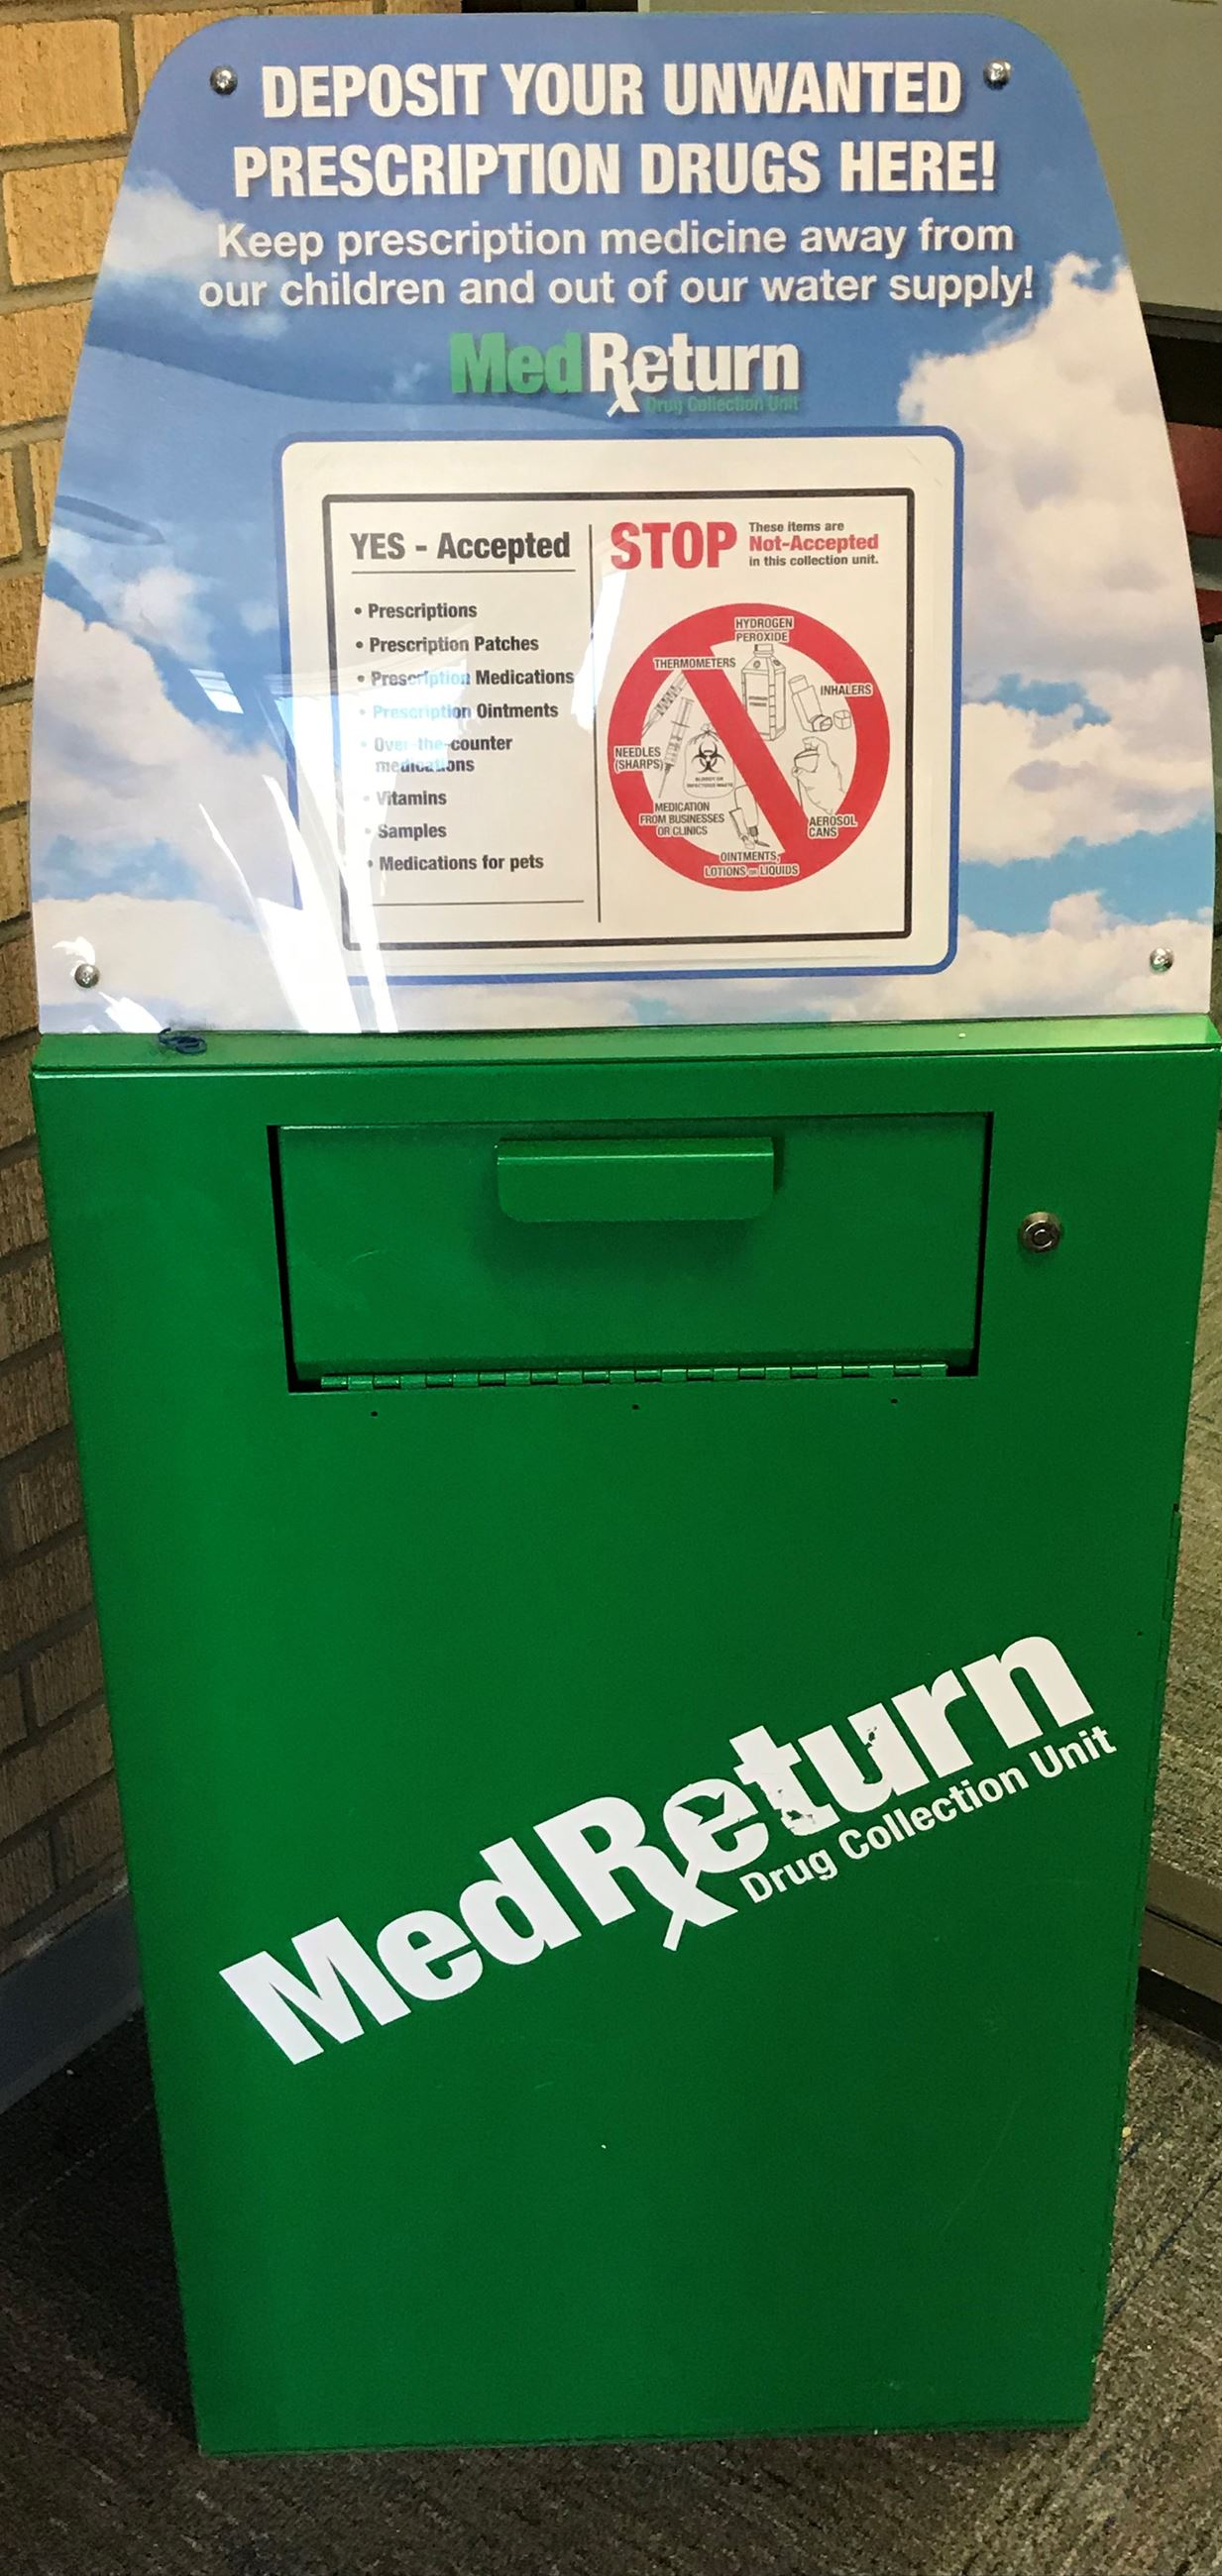 Medication Return Box Located at the Grand County Sheriff's Office